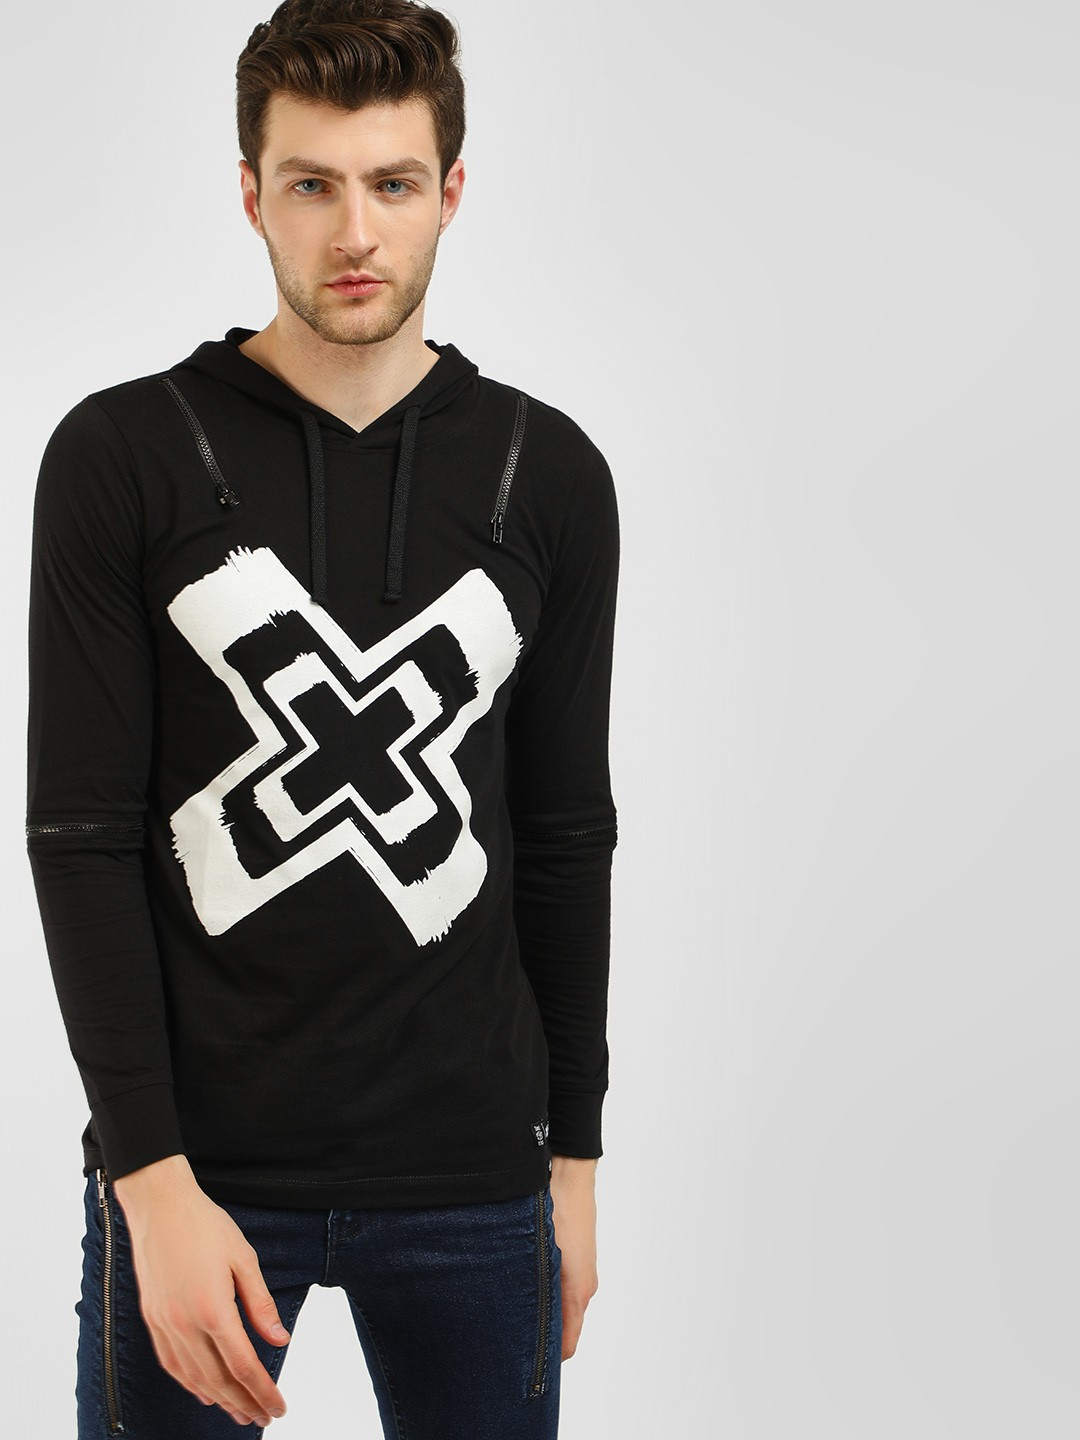 Kultprit Black Long Sleeve Hooded T-Shirt 1